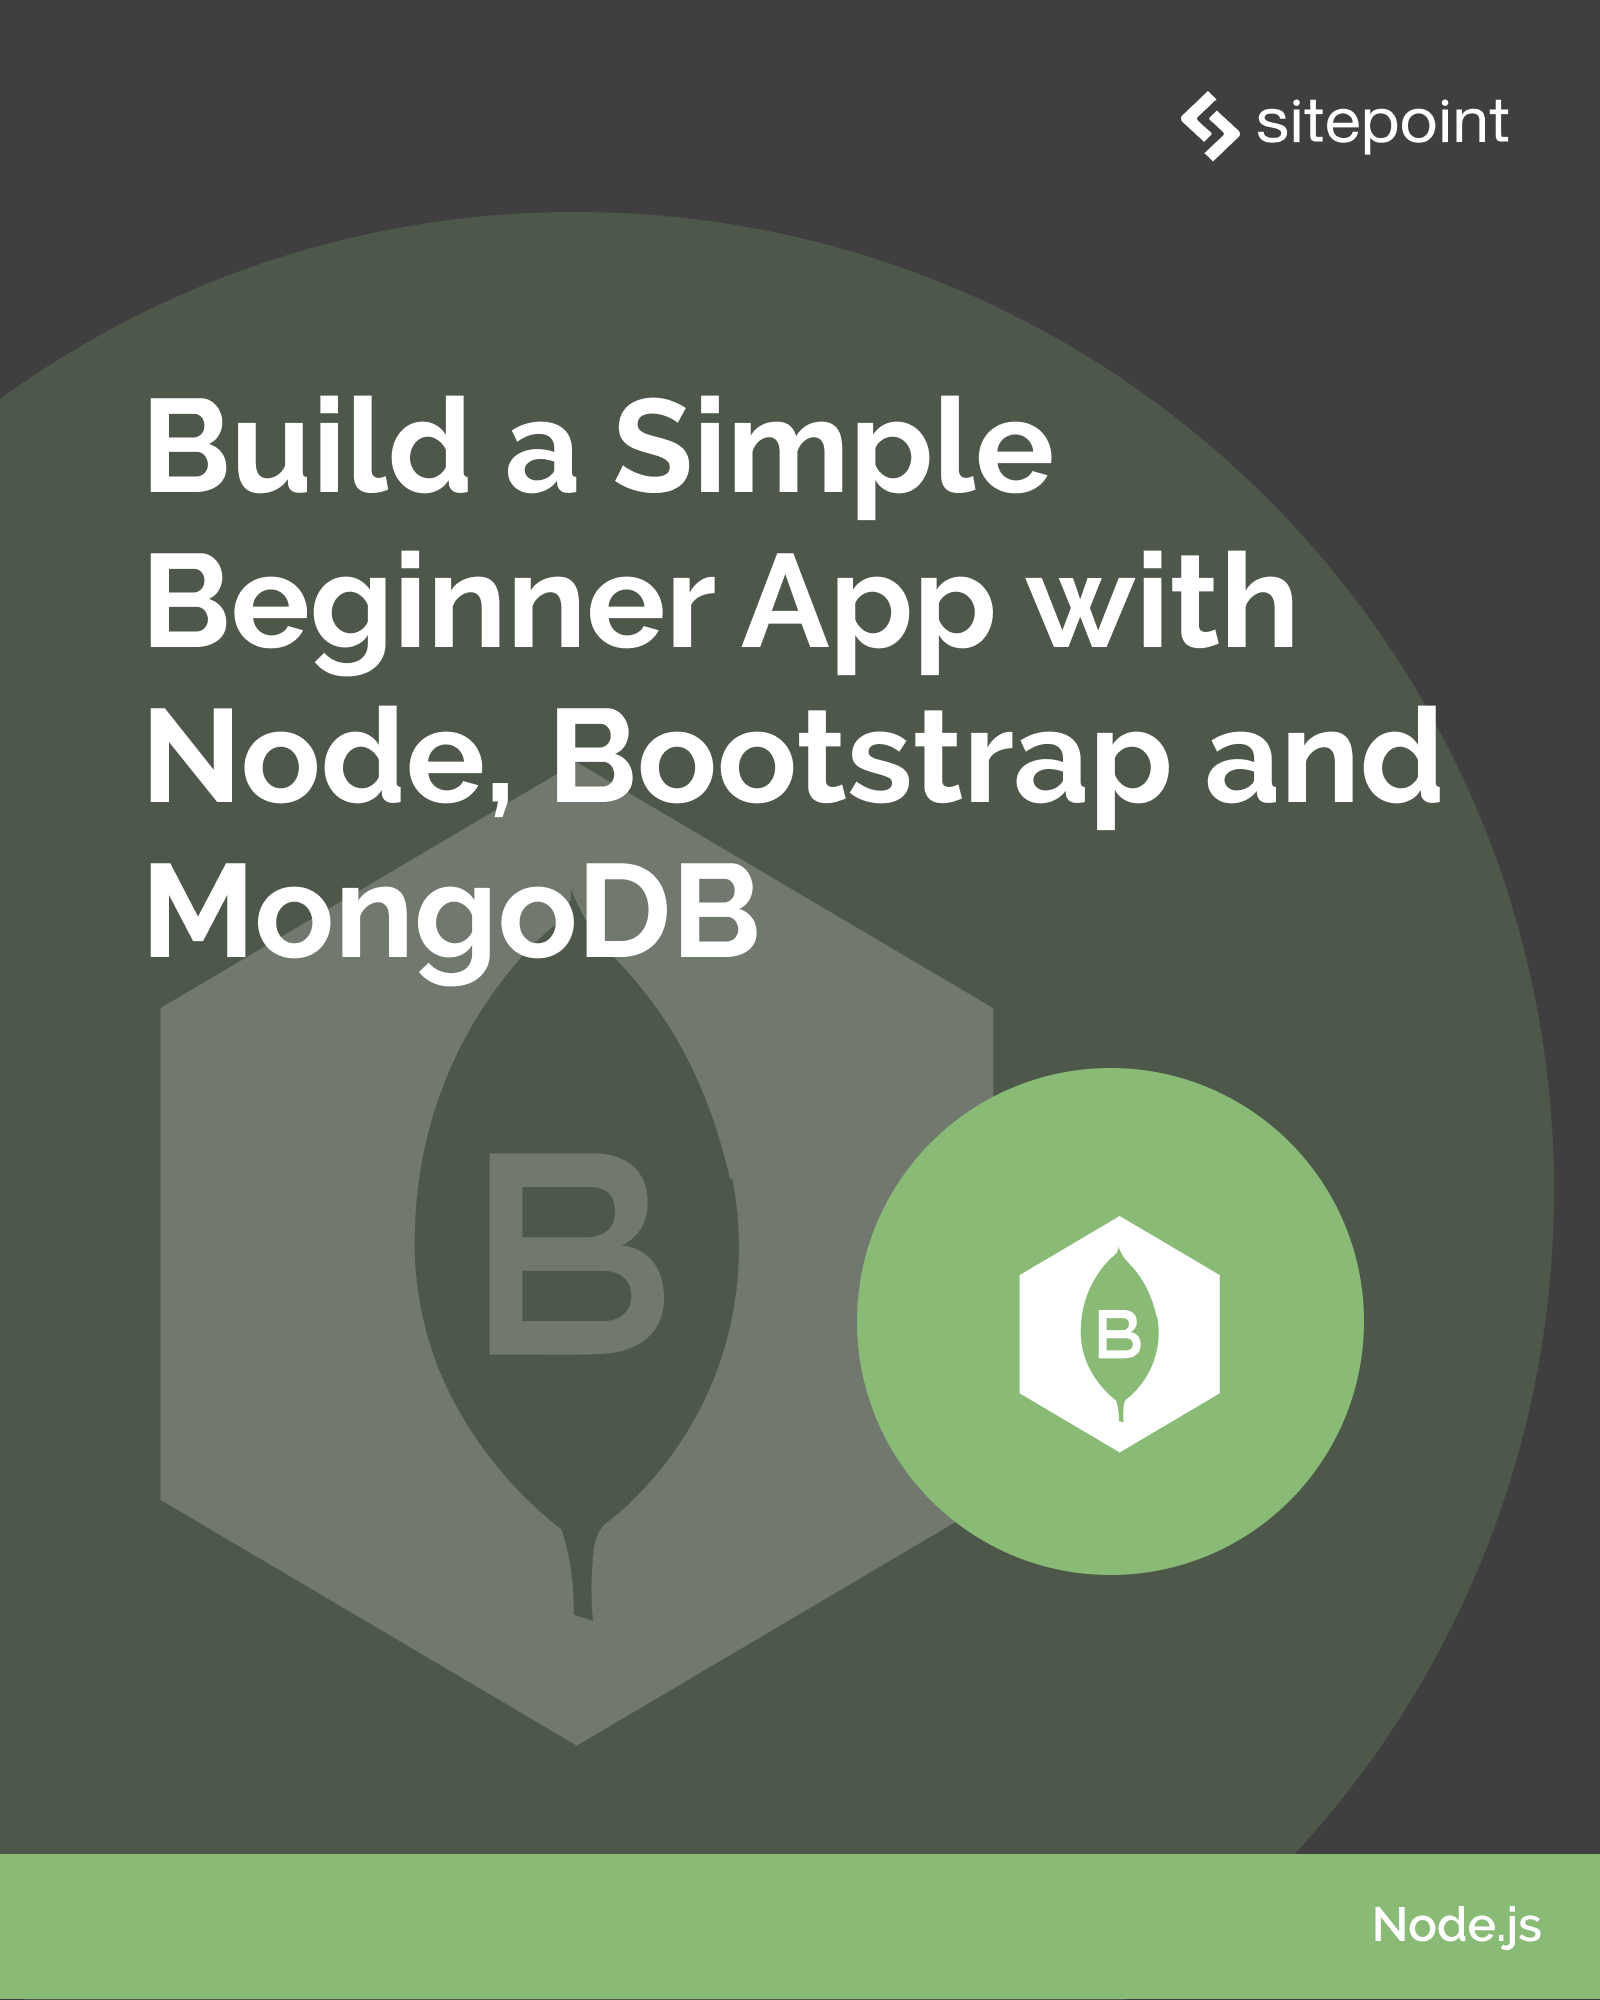 Build a Simple Beginner App with Node, Bootstrap and MongoDB